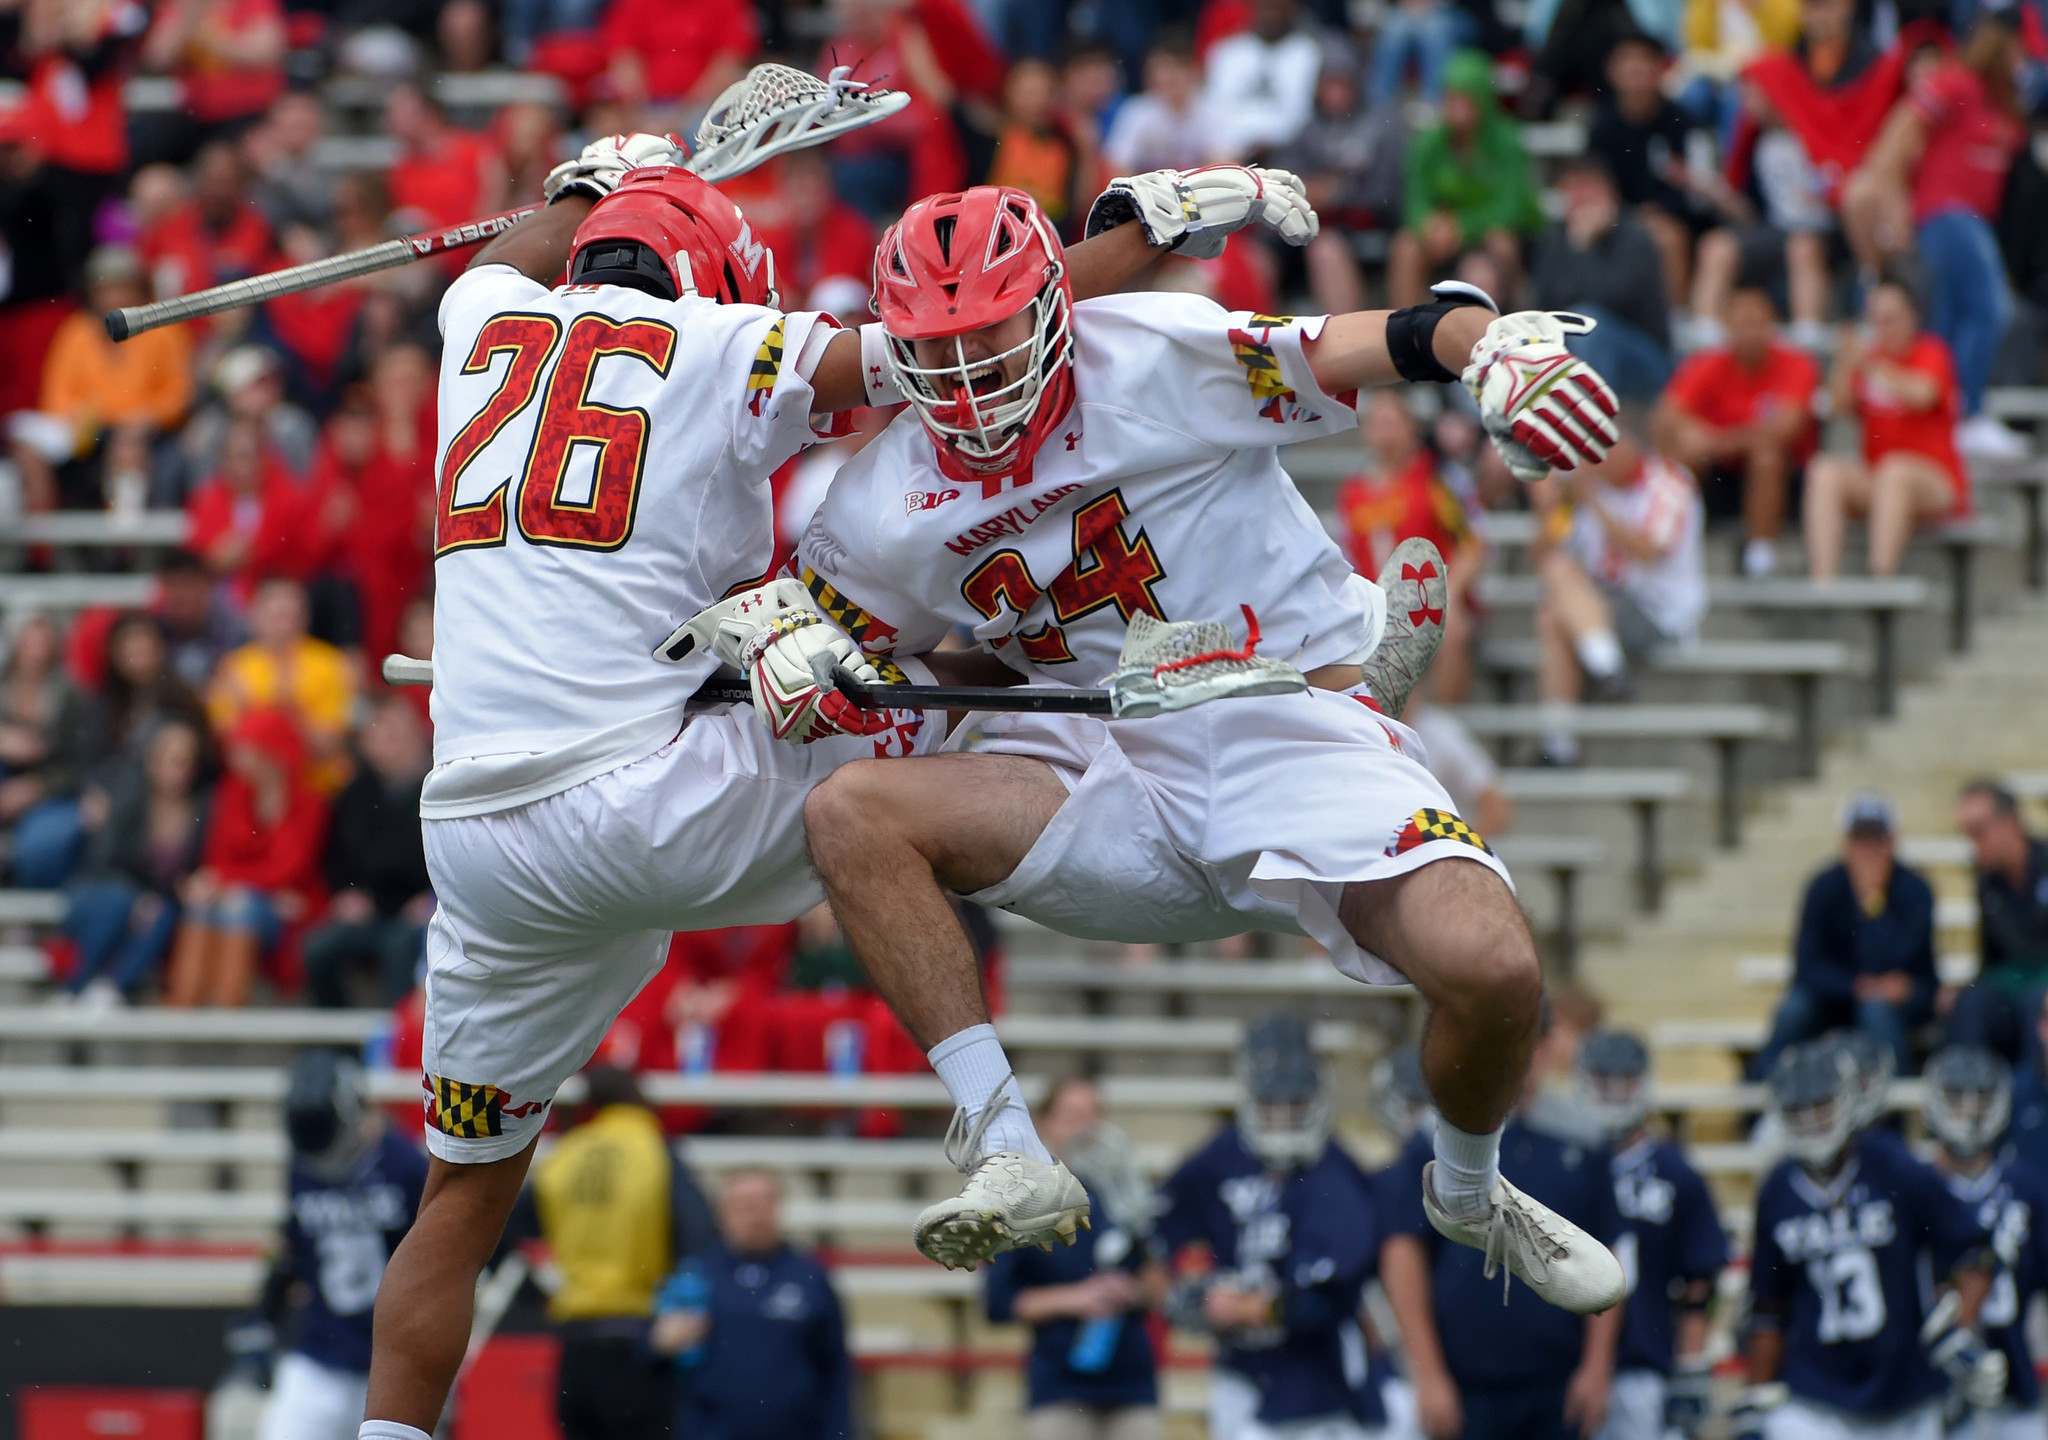 Bal-maryland-men-s-lacrosse-persevered-against-three-ranked-opponents-in-nine-days-20170418